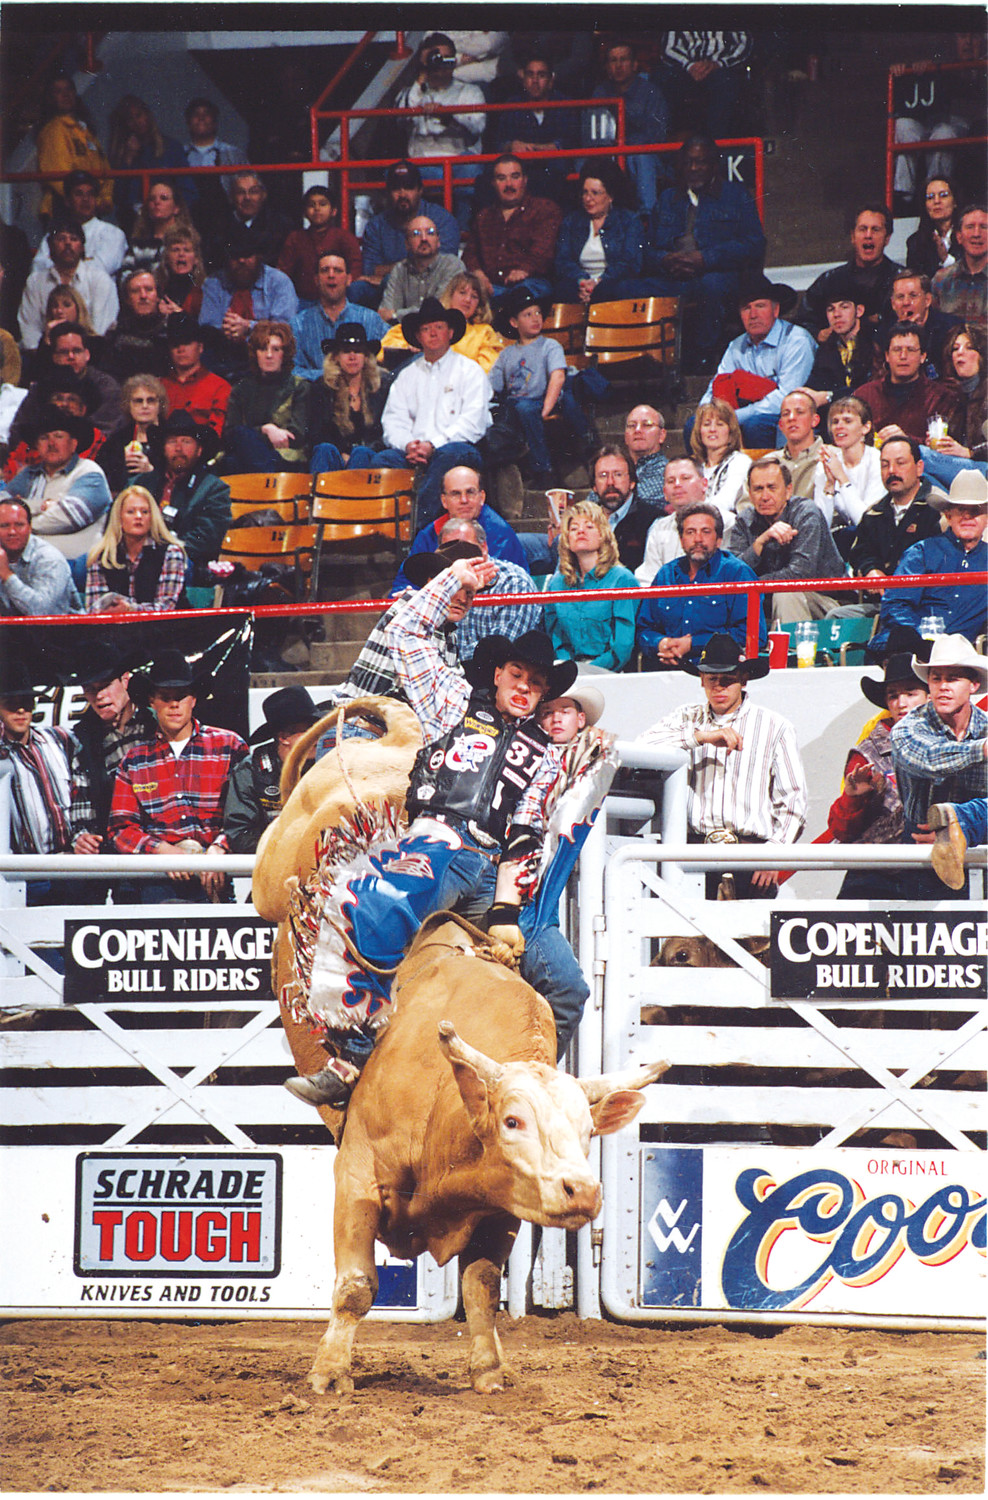 National Western Stock Show Prepares For January Events